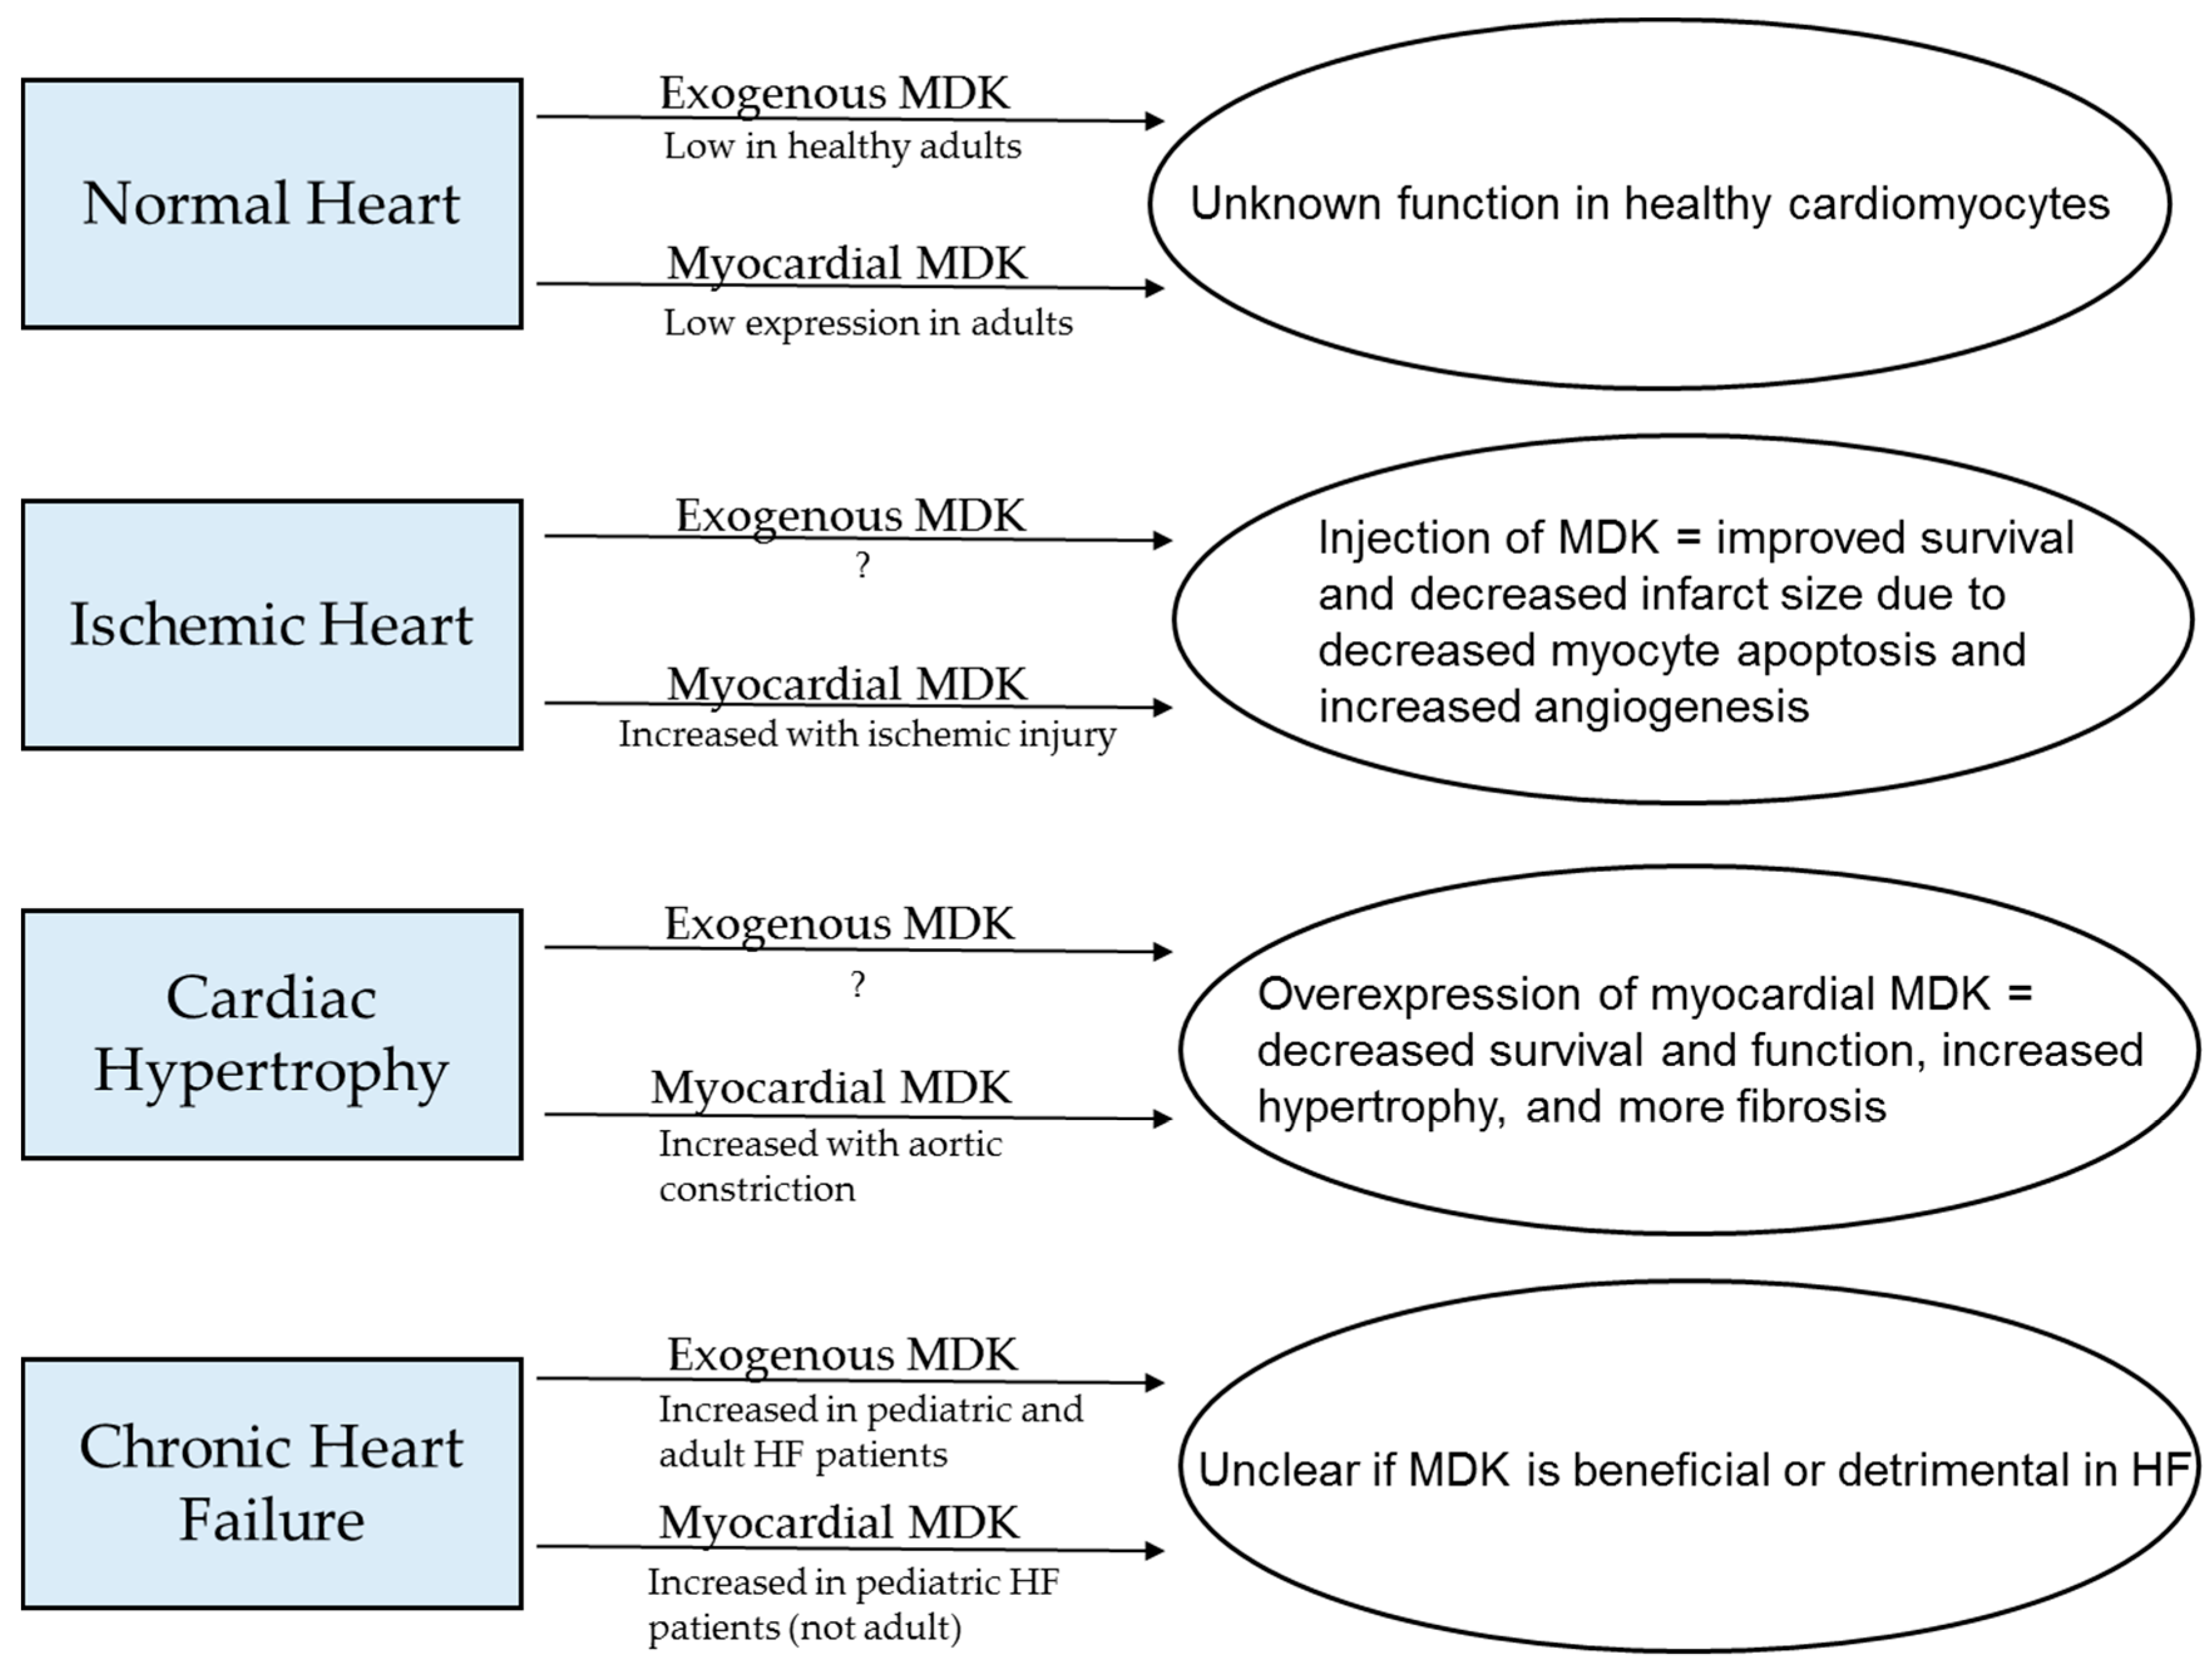 JCDD | Free Full-Text | Midkine's Role in Cardiac Pathology | HTML